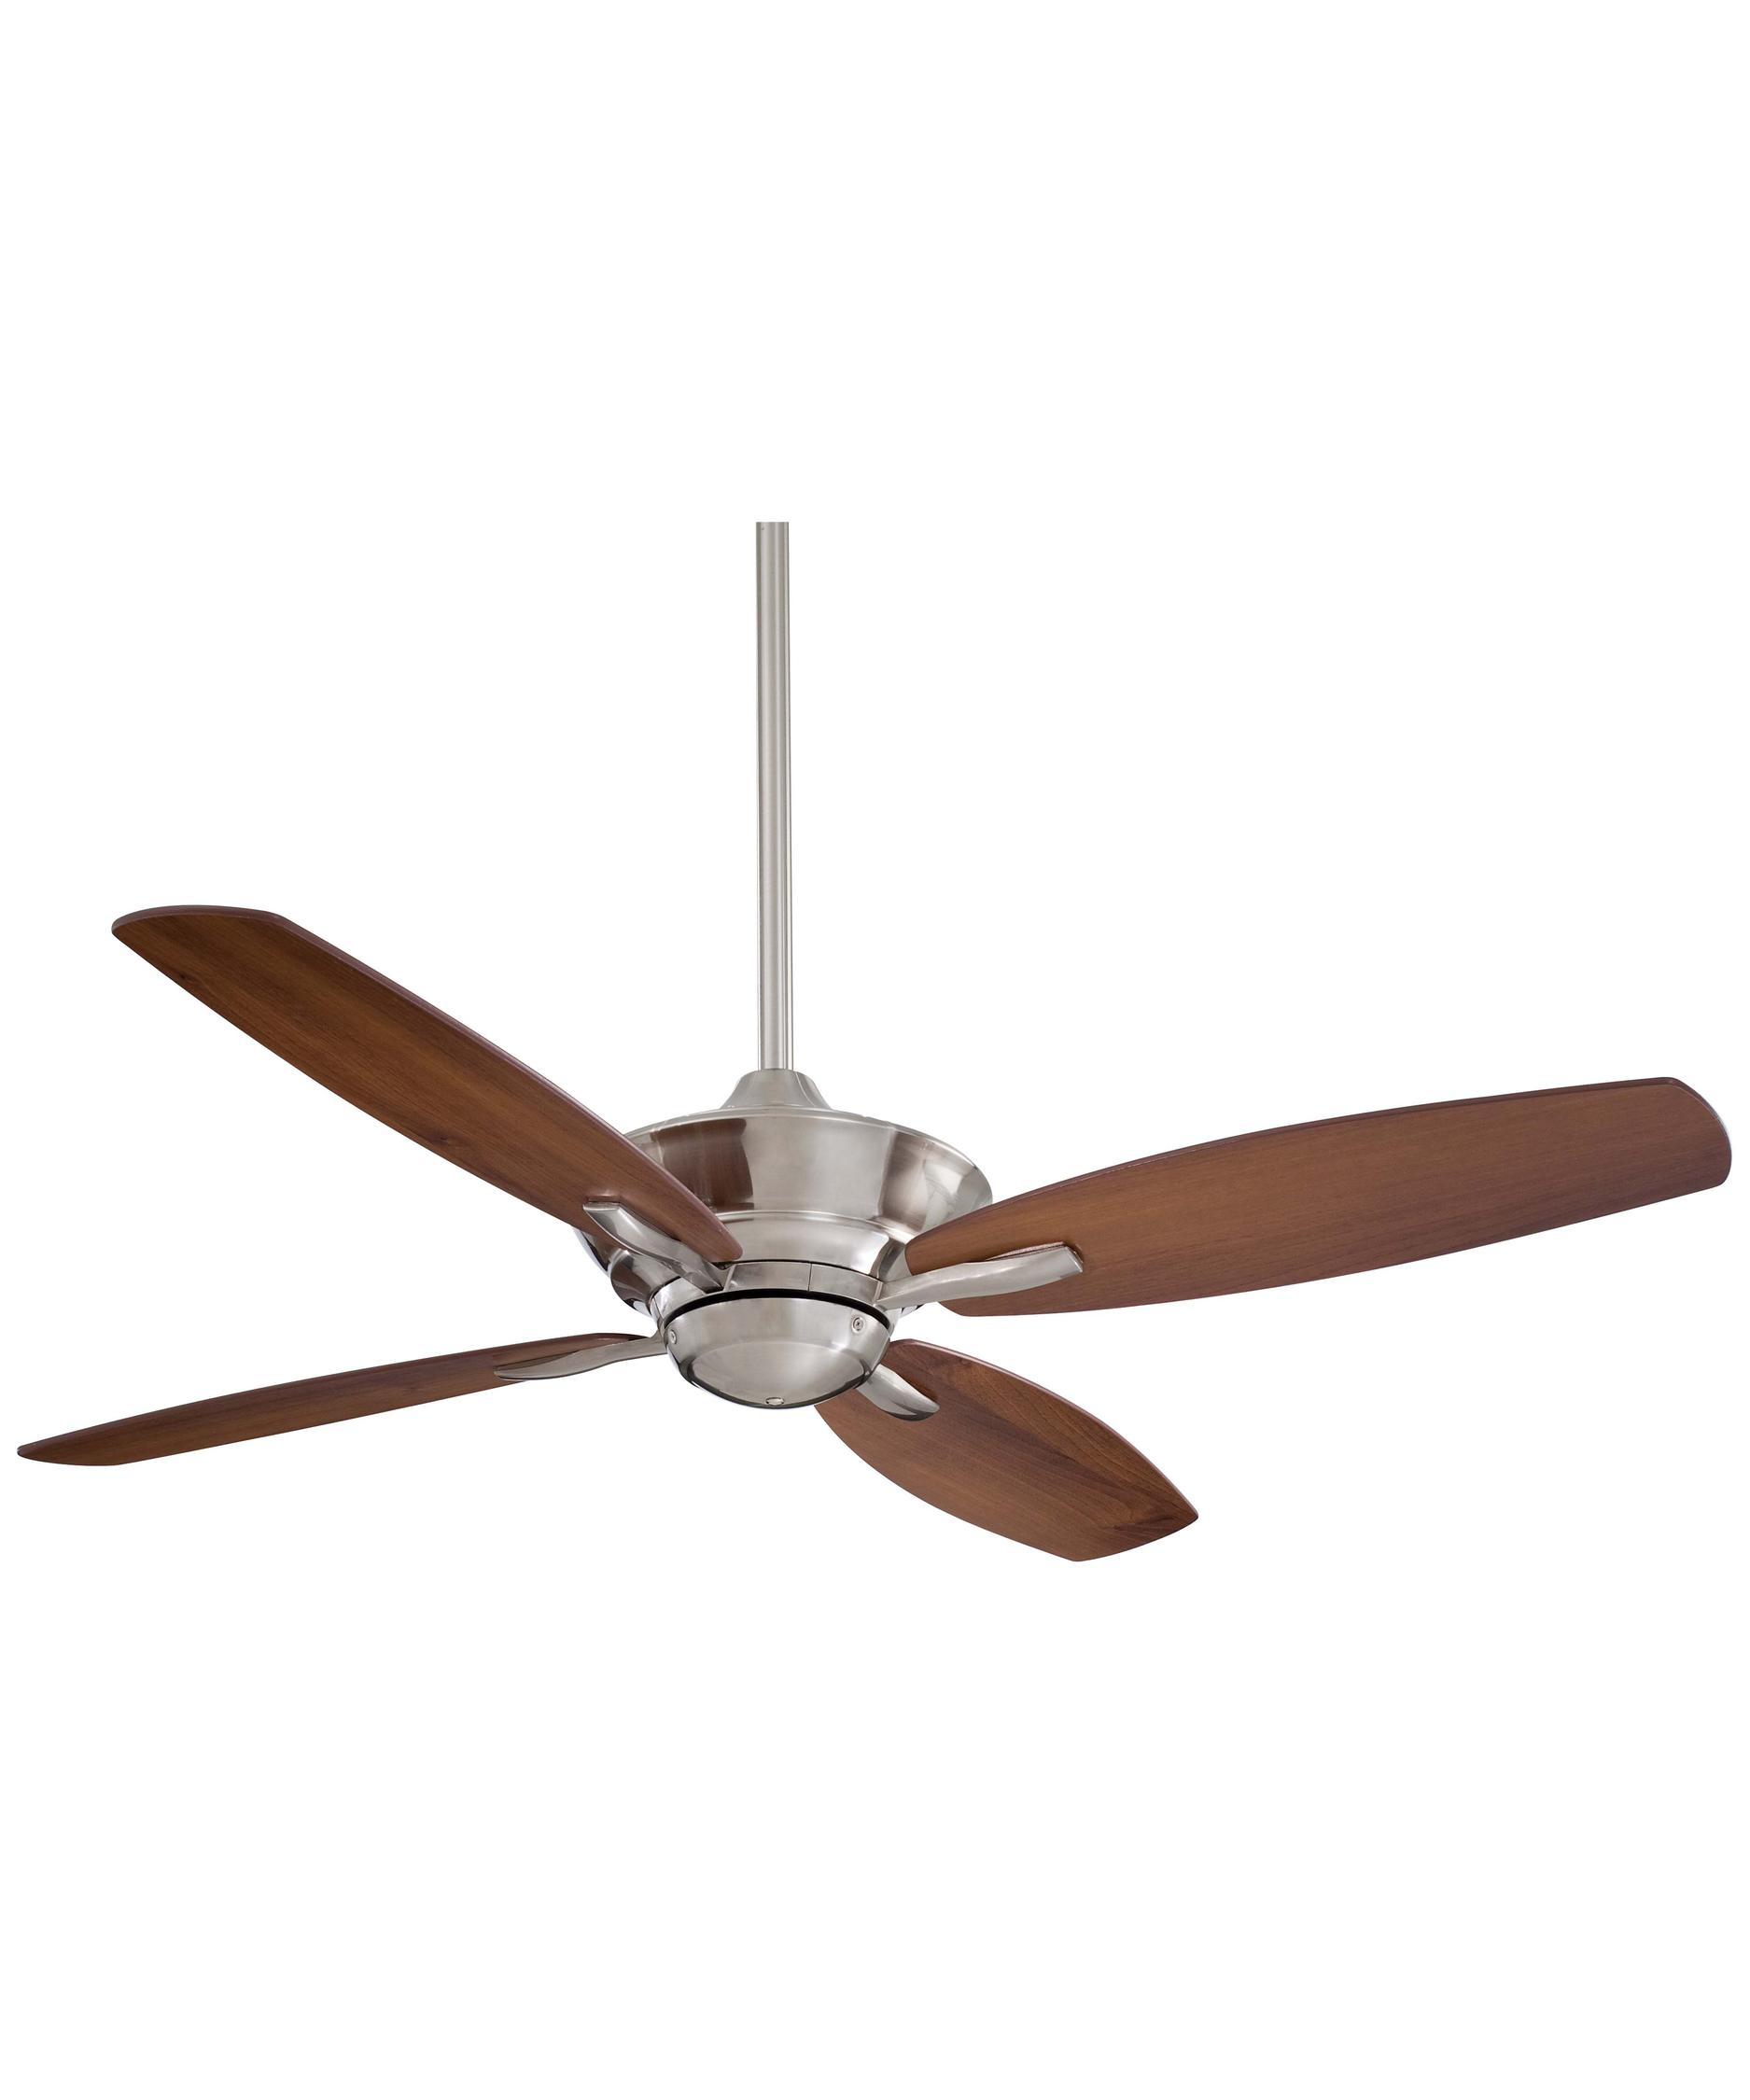 Shown in Brushed Nickel finish. Minka Aire F513 New Era 52 Inch 4 Blade Ceiling Fan   Capitol